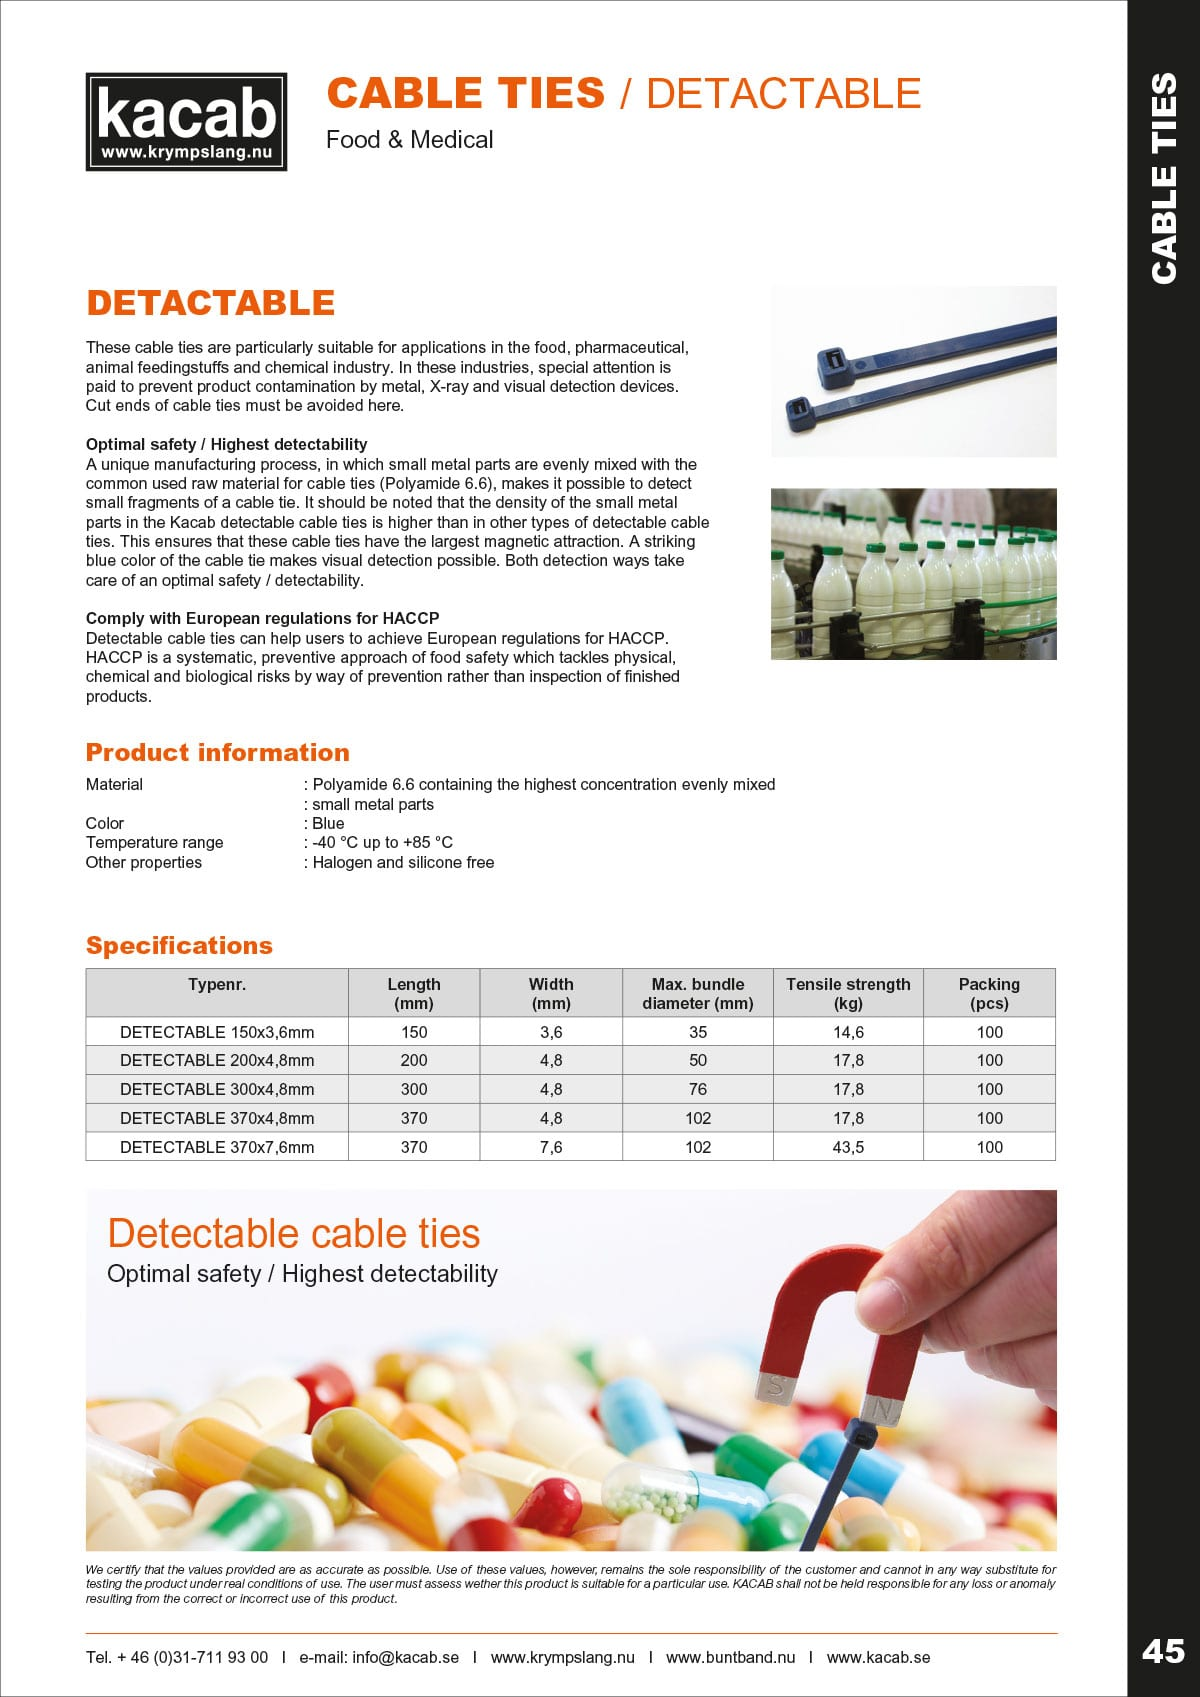 Detactable cable ties